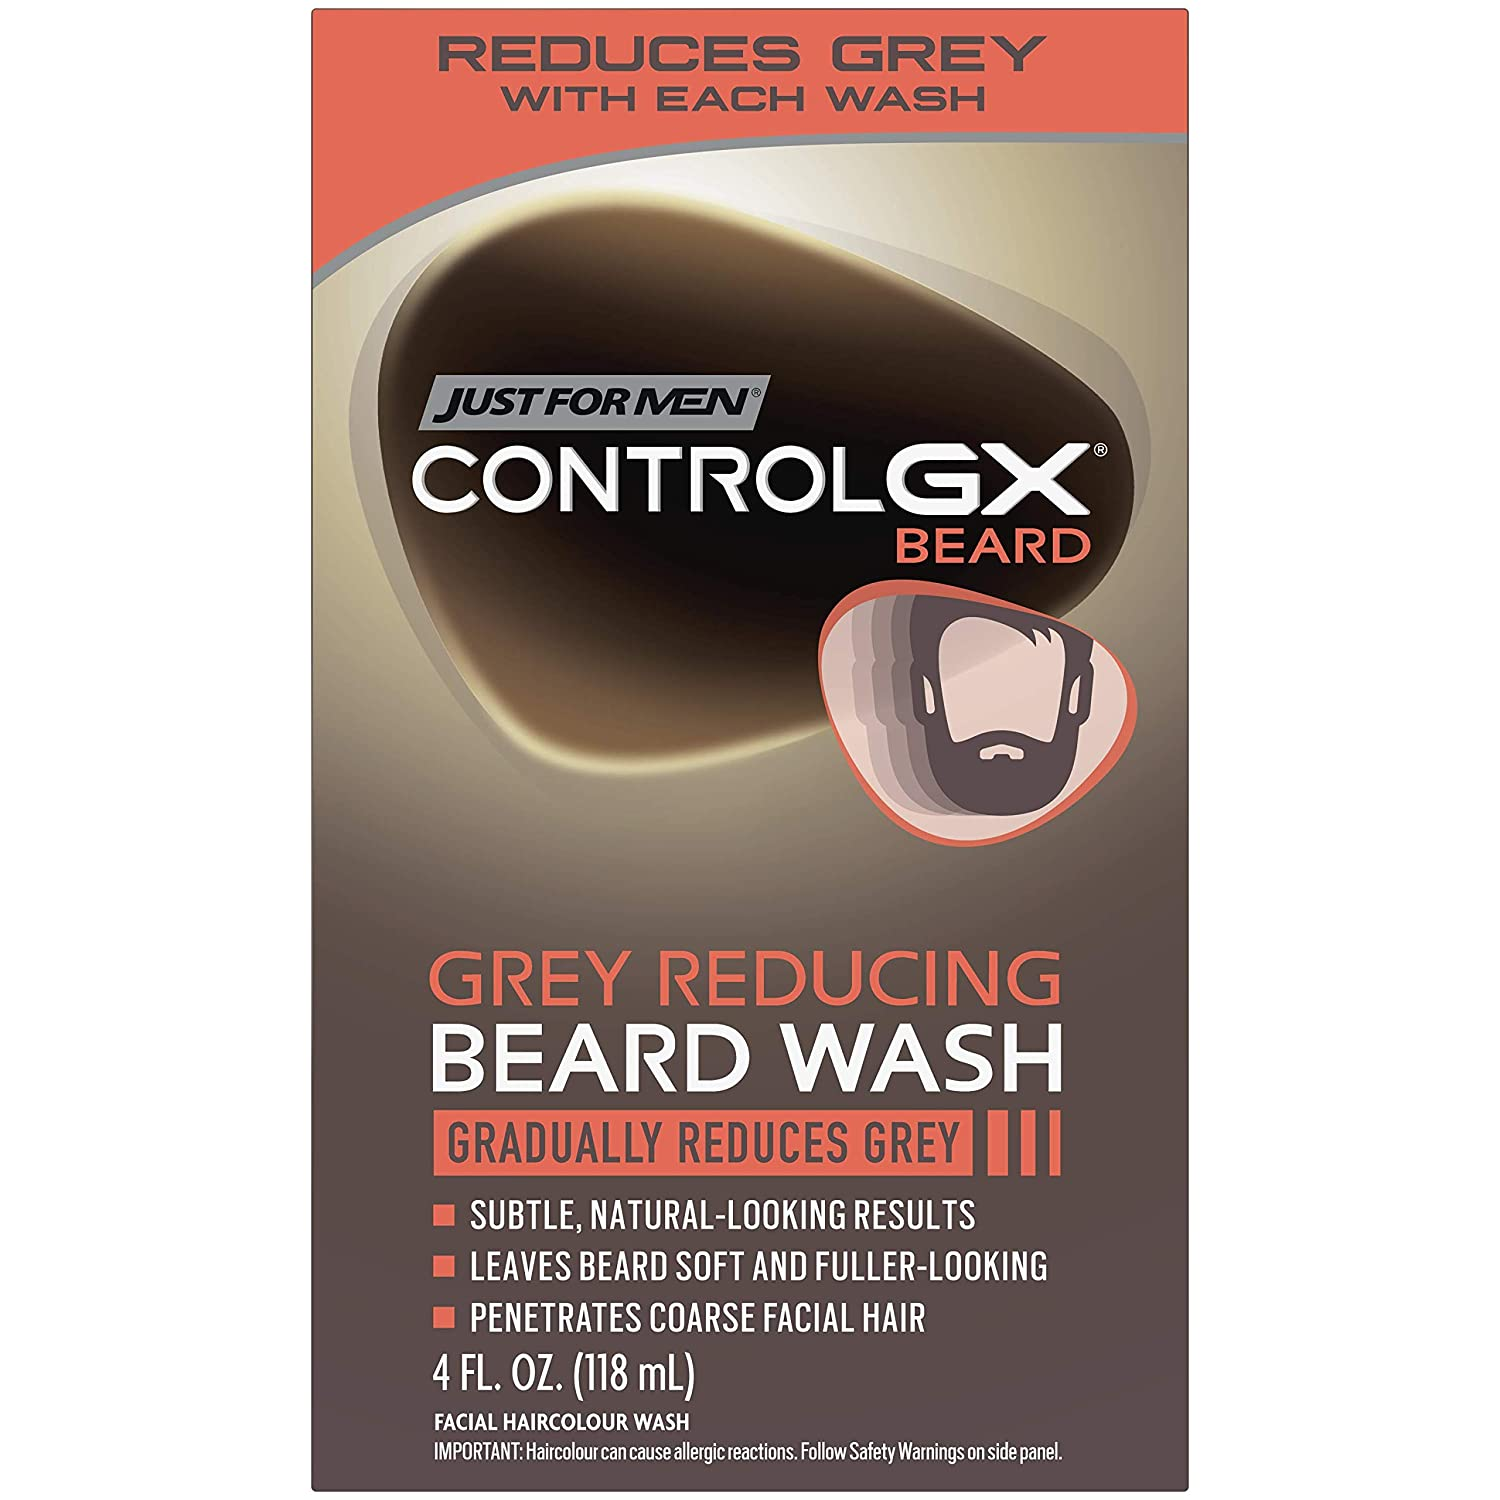 Just For Men Control GX grey-reducing beard wash